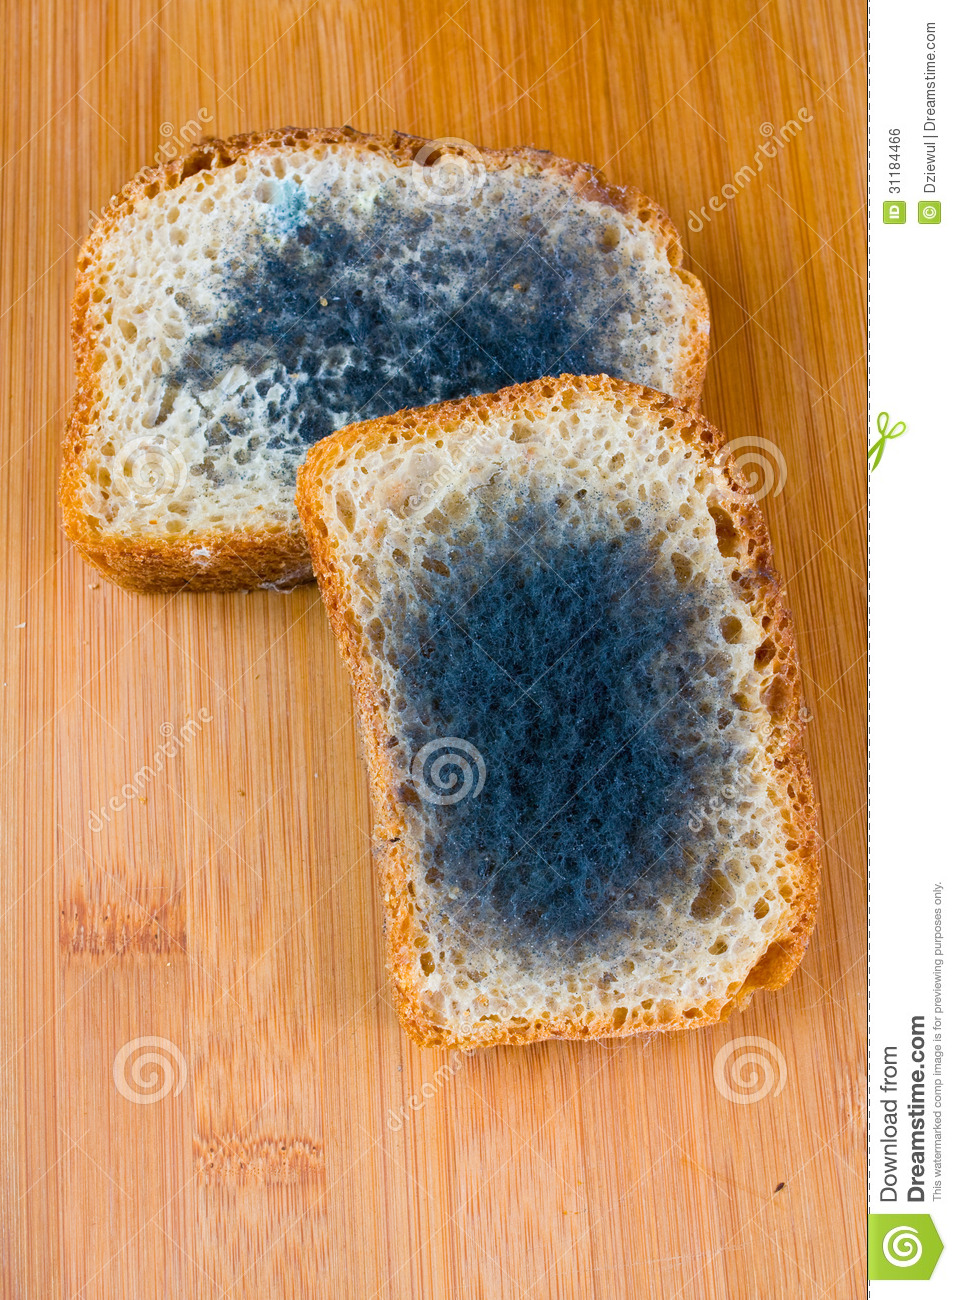 Moldy Sandwich Clipart Royalty Free Stock Image  Moldy Bread